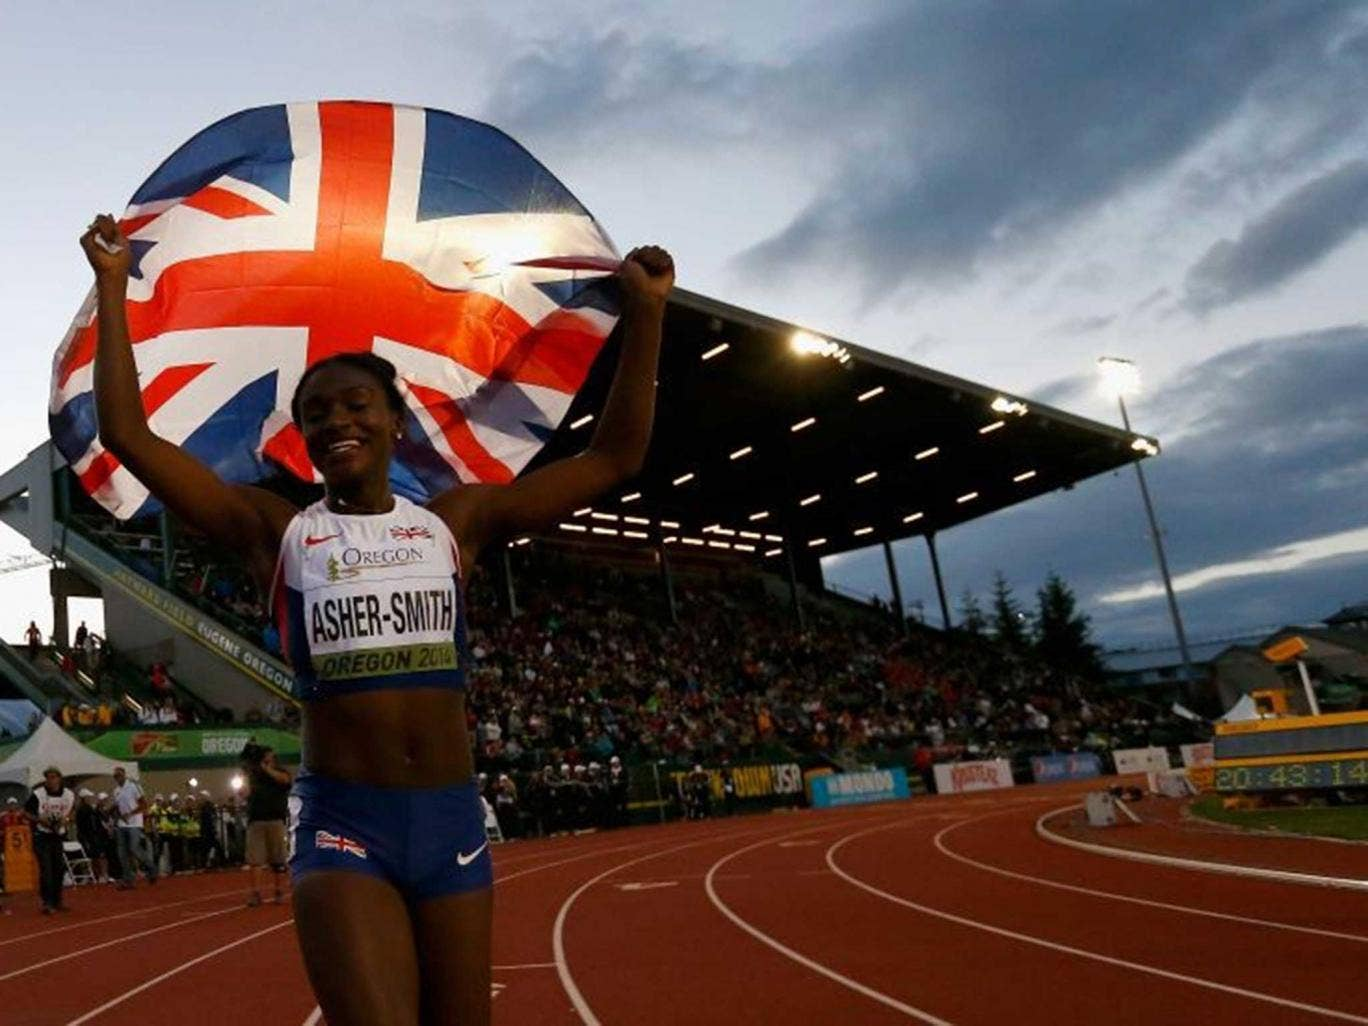 Golden girl: Dina Asher-Smith celebrates her win in the world junior championships in Oregon last month